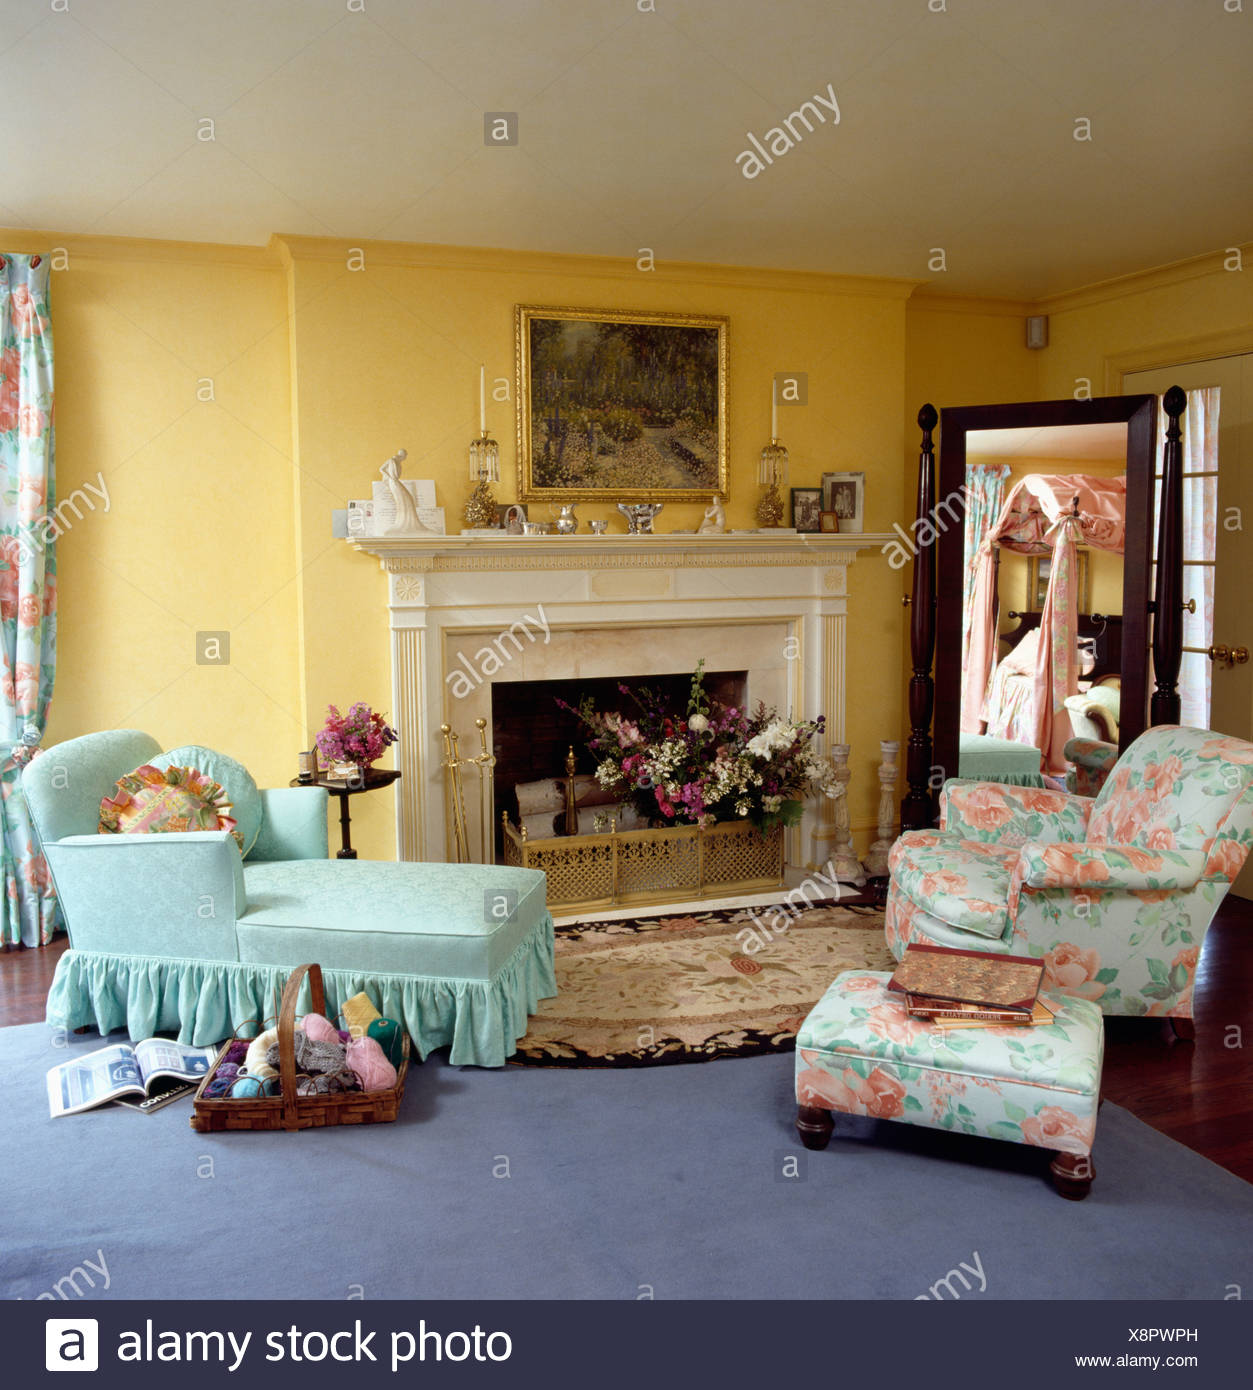 Turquoise Chaise Longue And Floral Patterned Armchair And